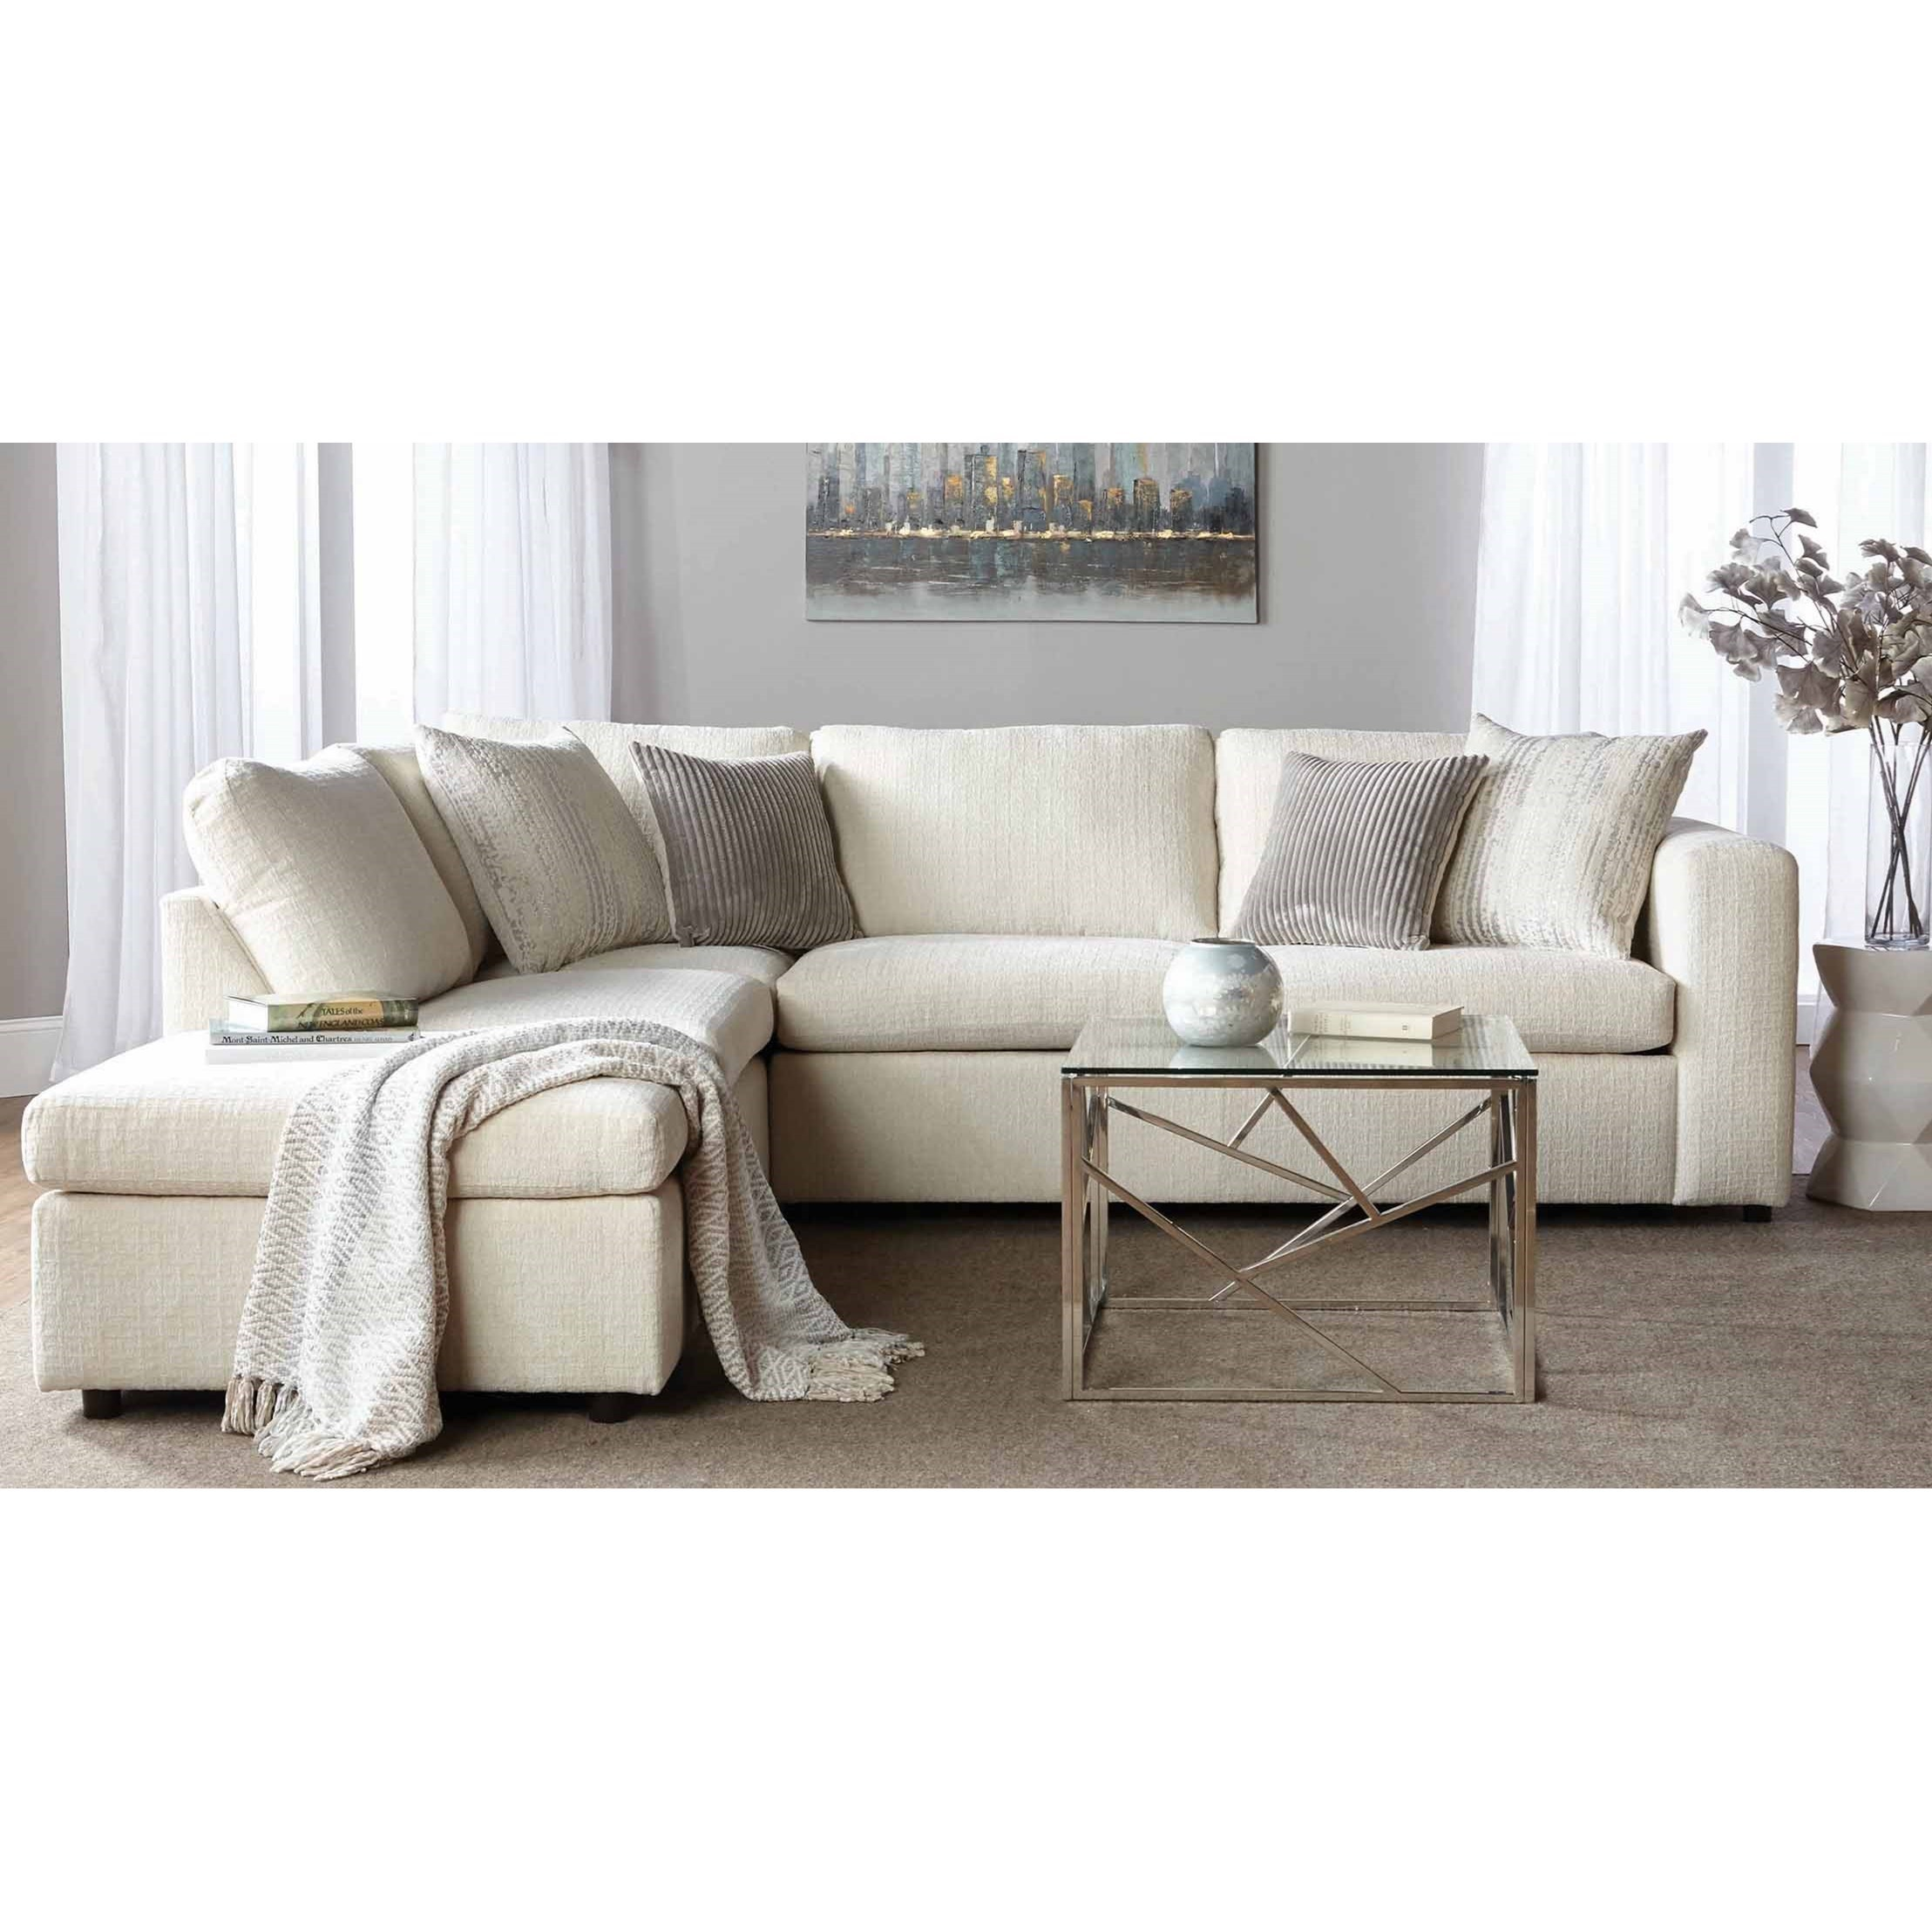 Delicieux Serta Upholstery By Hughes Furniture 1100Sectional Sofa With Chaise